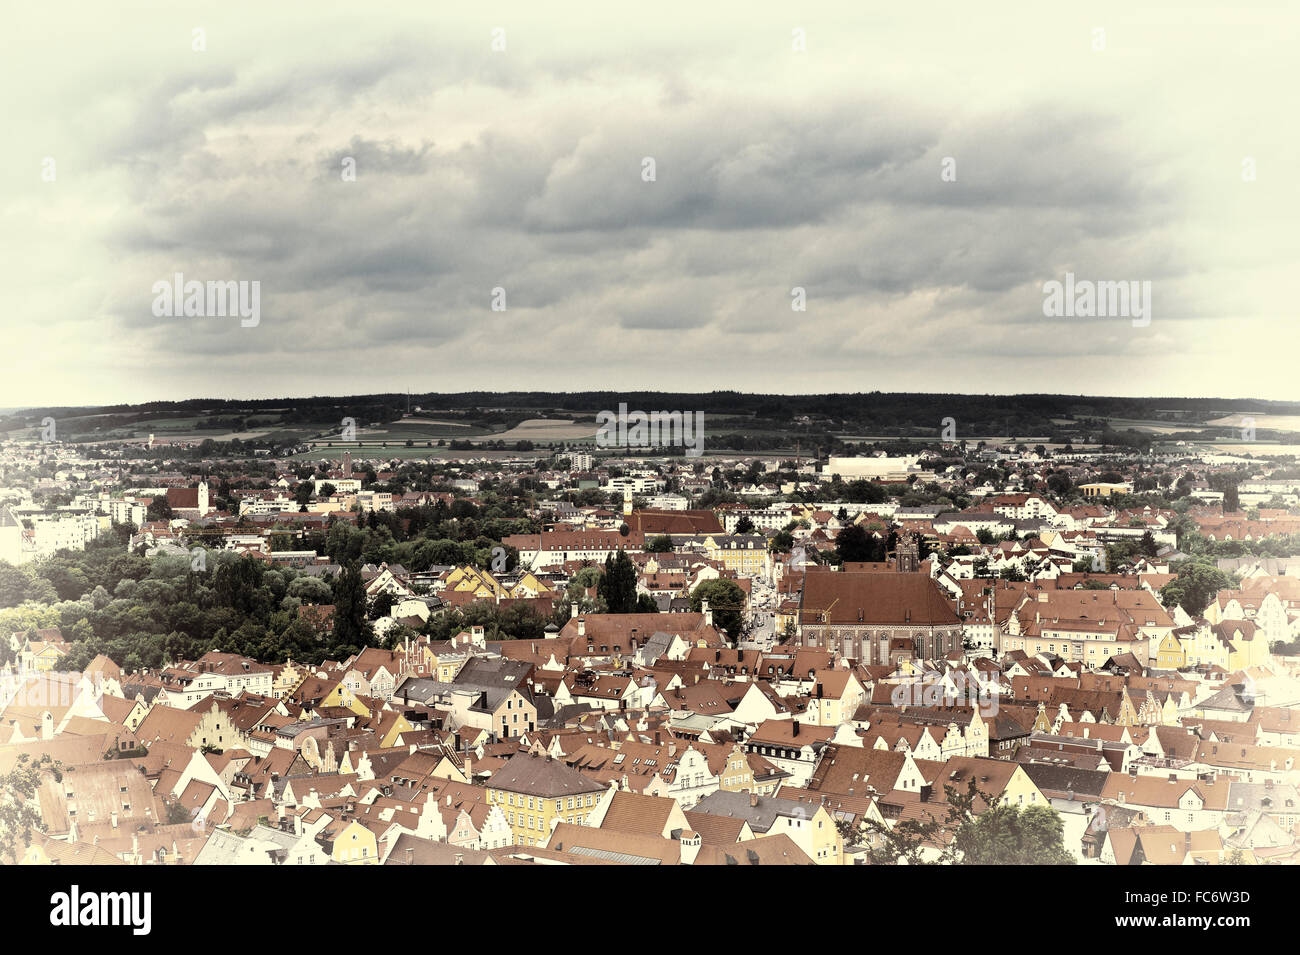 Aerial View - Stock Image